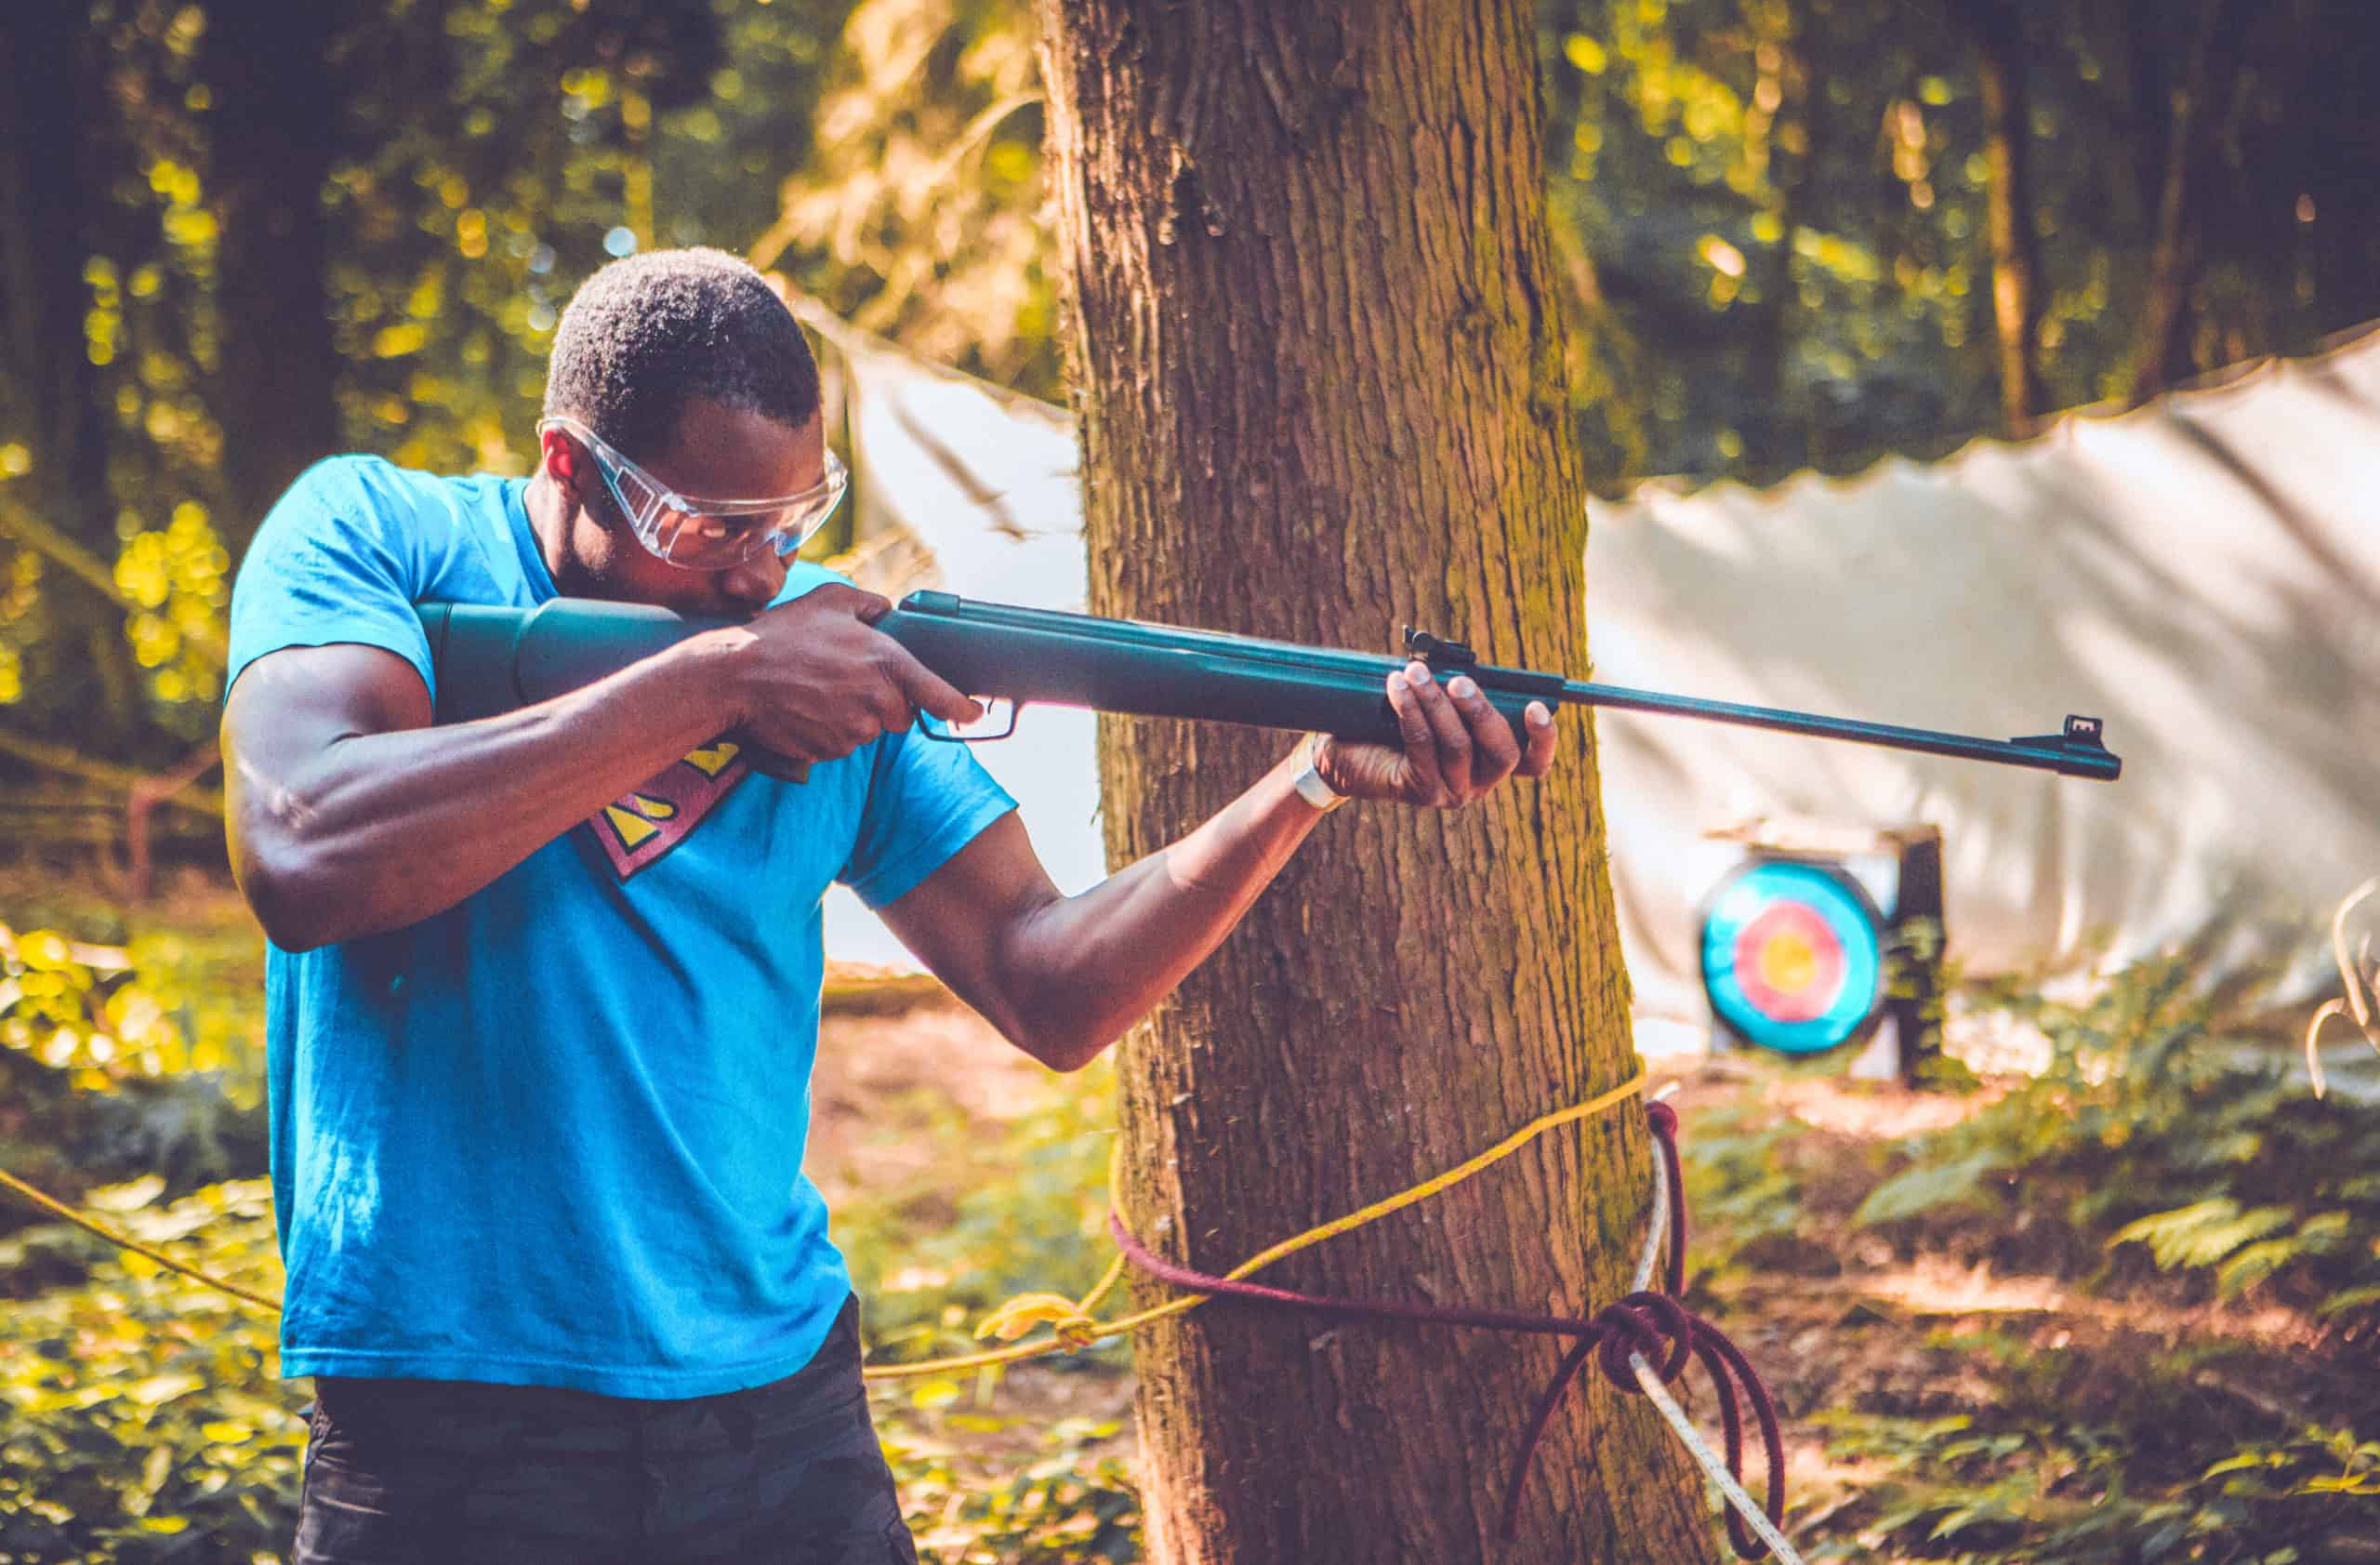 Man at pistol shooting activity at Camp Wildfire. A summer weekend break in a forest near London and Kent. An outdoor woodland retreat featuring adventure activities, live music, DJs, parties and camping. Half summer adventure activity camp, half music festival, for adults only.